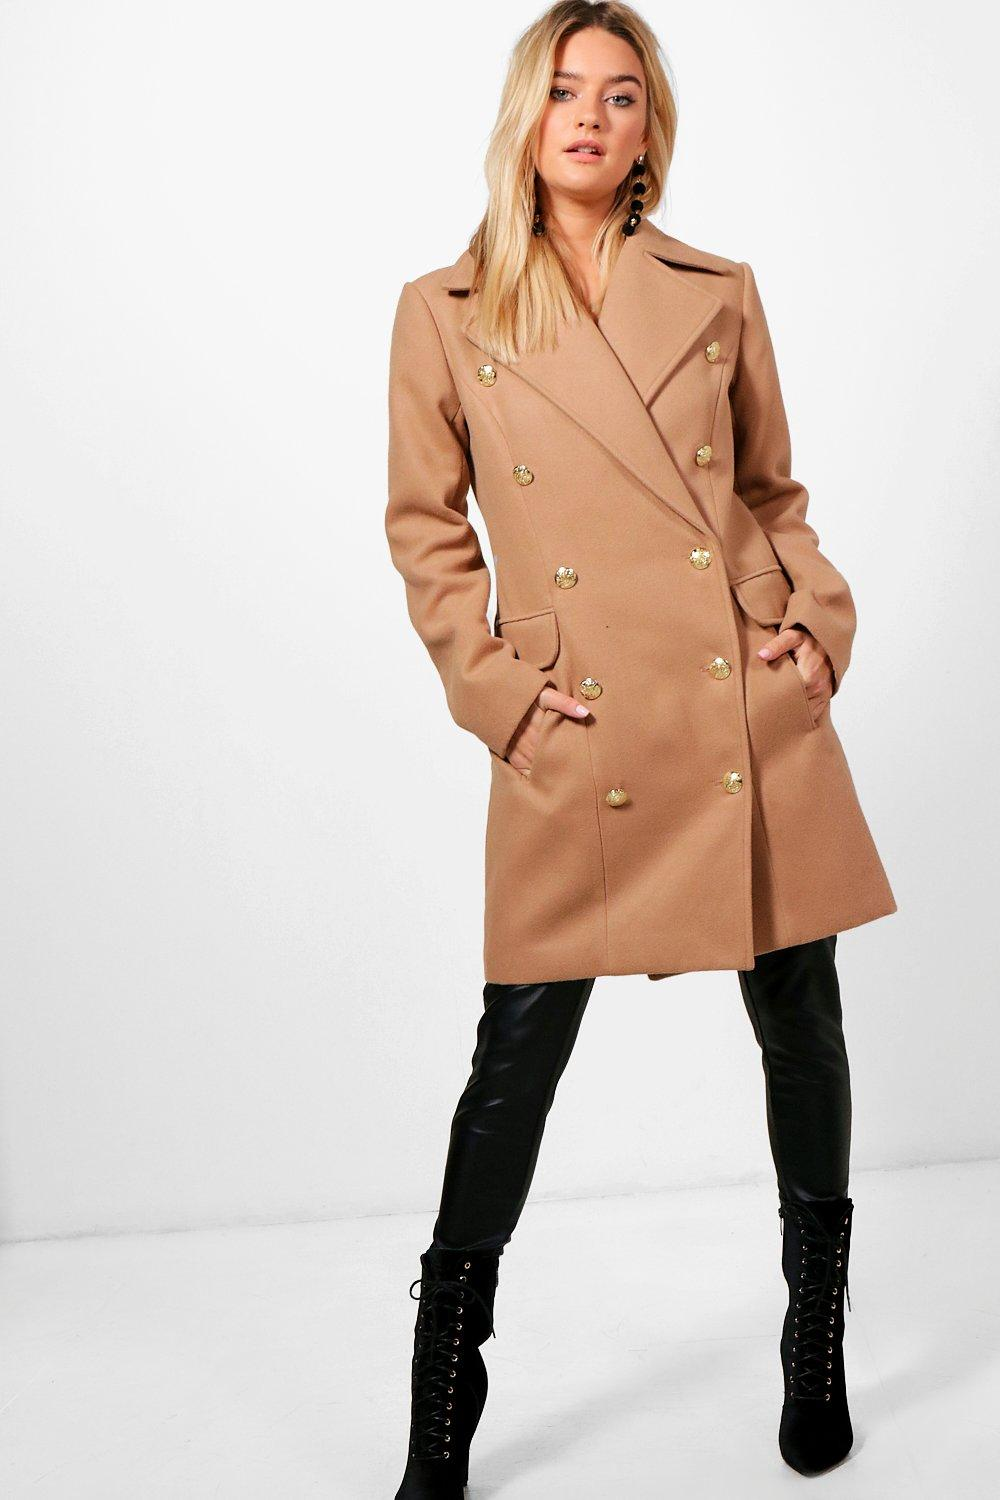 Double Breasted Wool Look Military Coat - camel